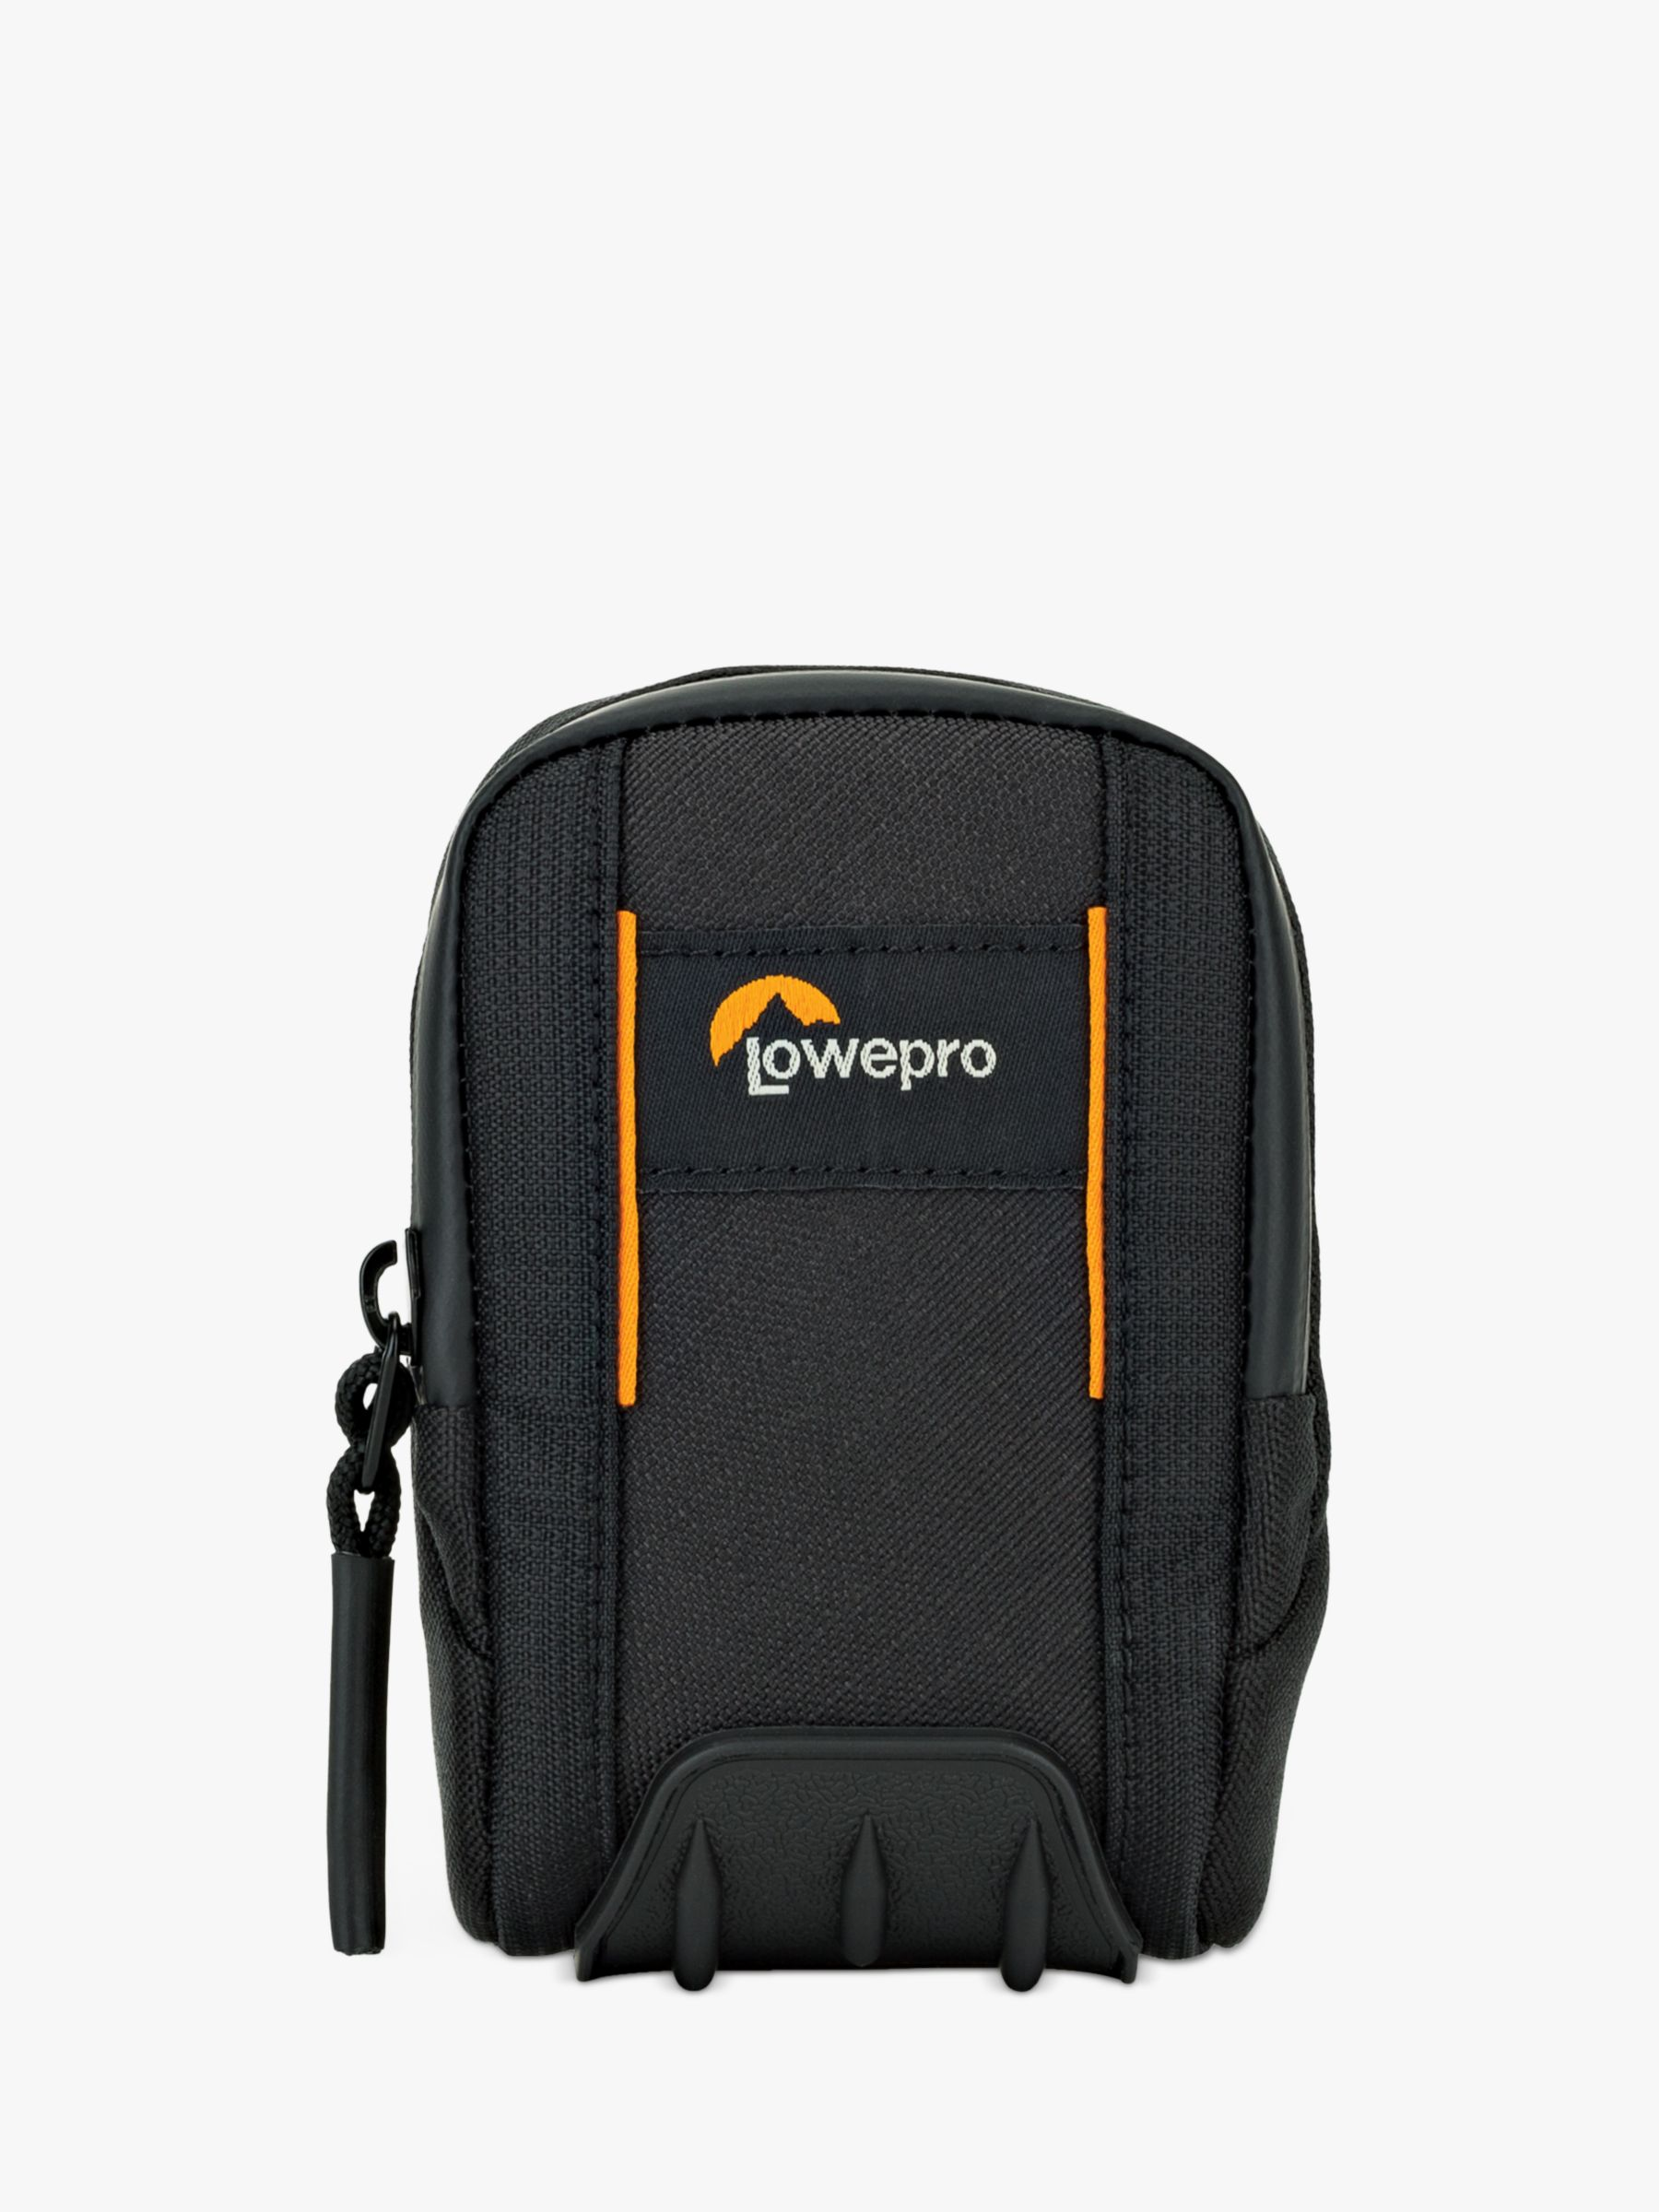 Lowepro Lowepro Adventura CS 10 Camera Case